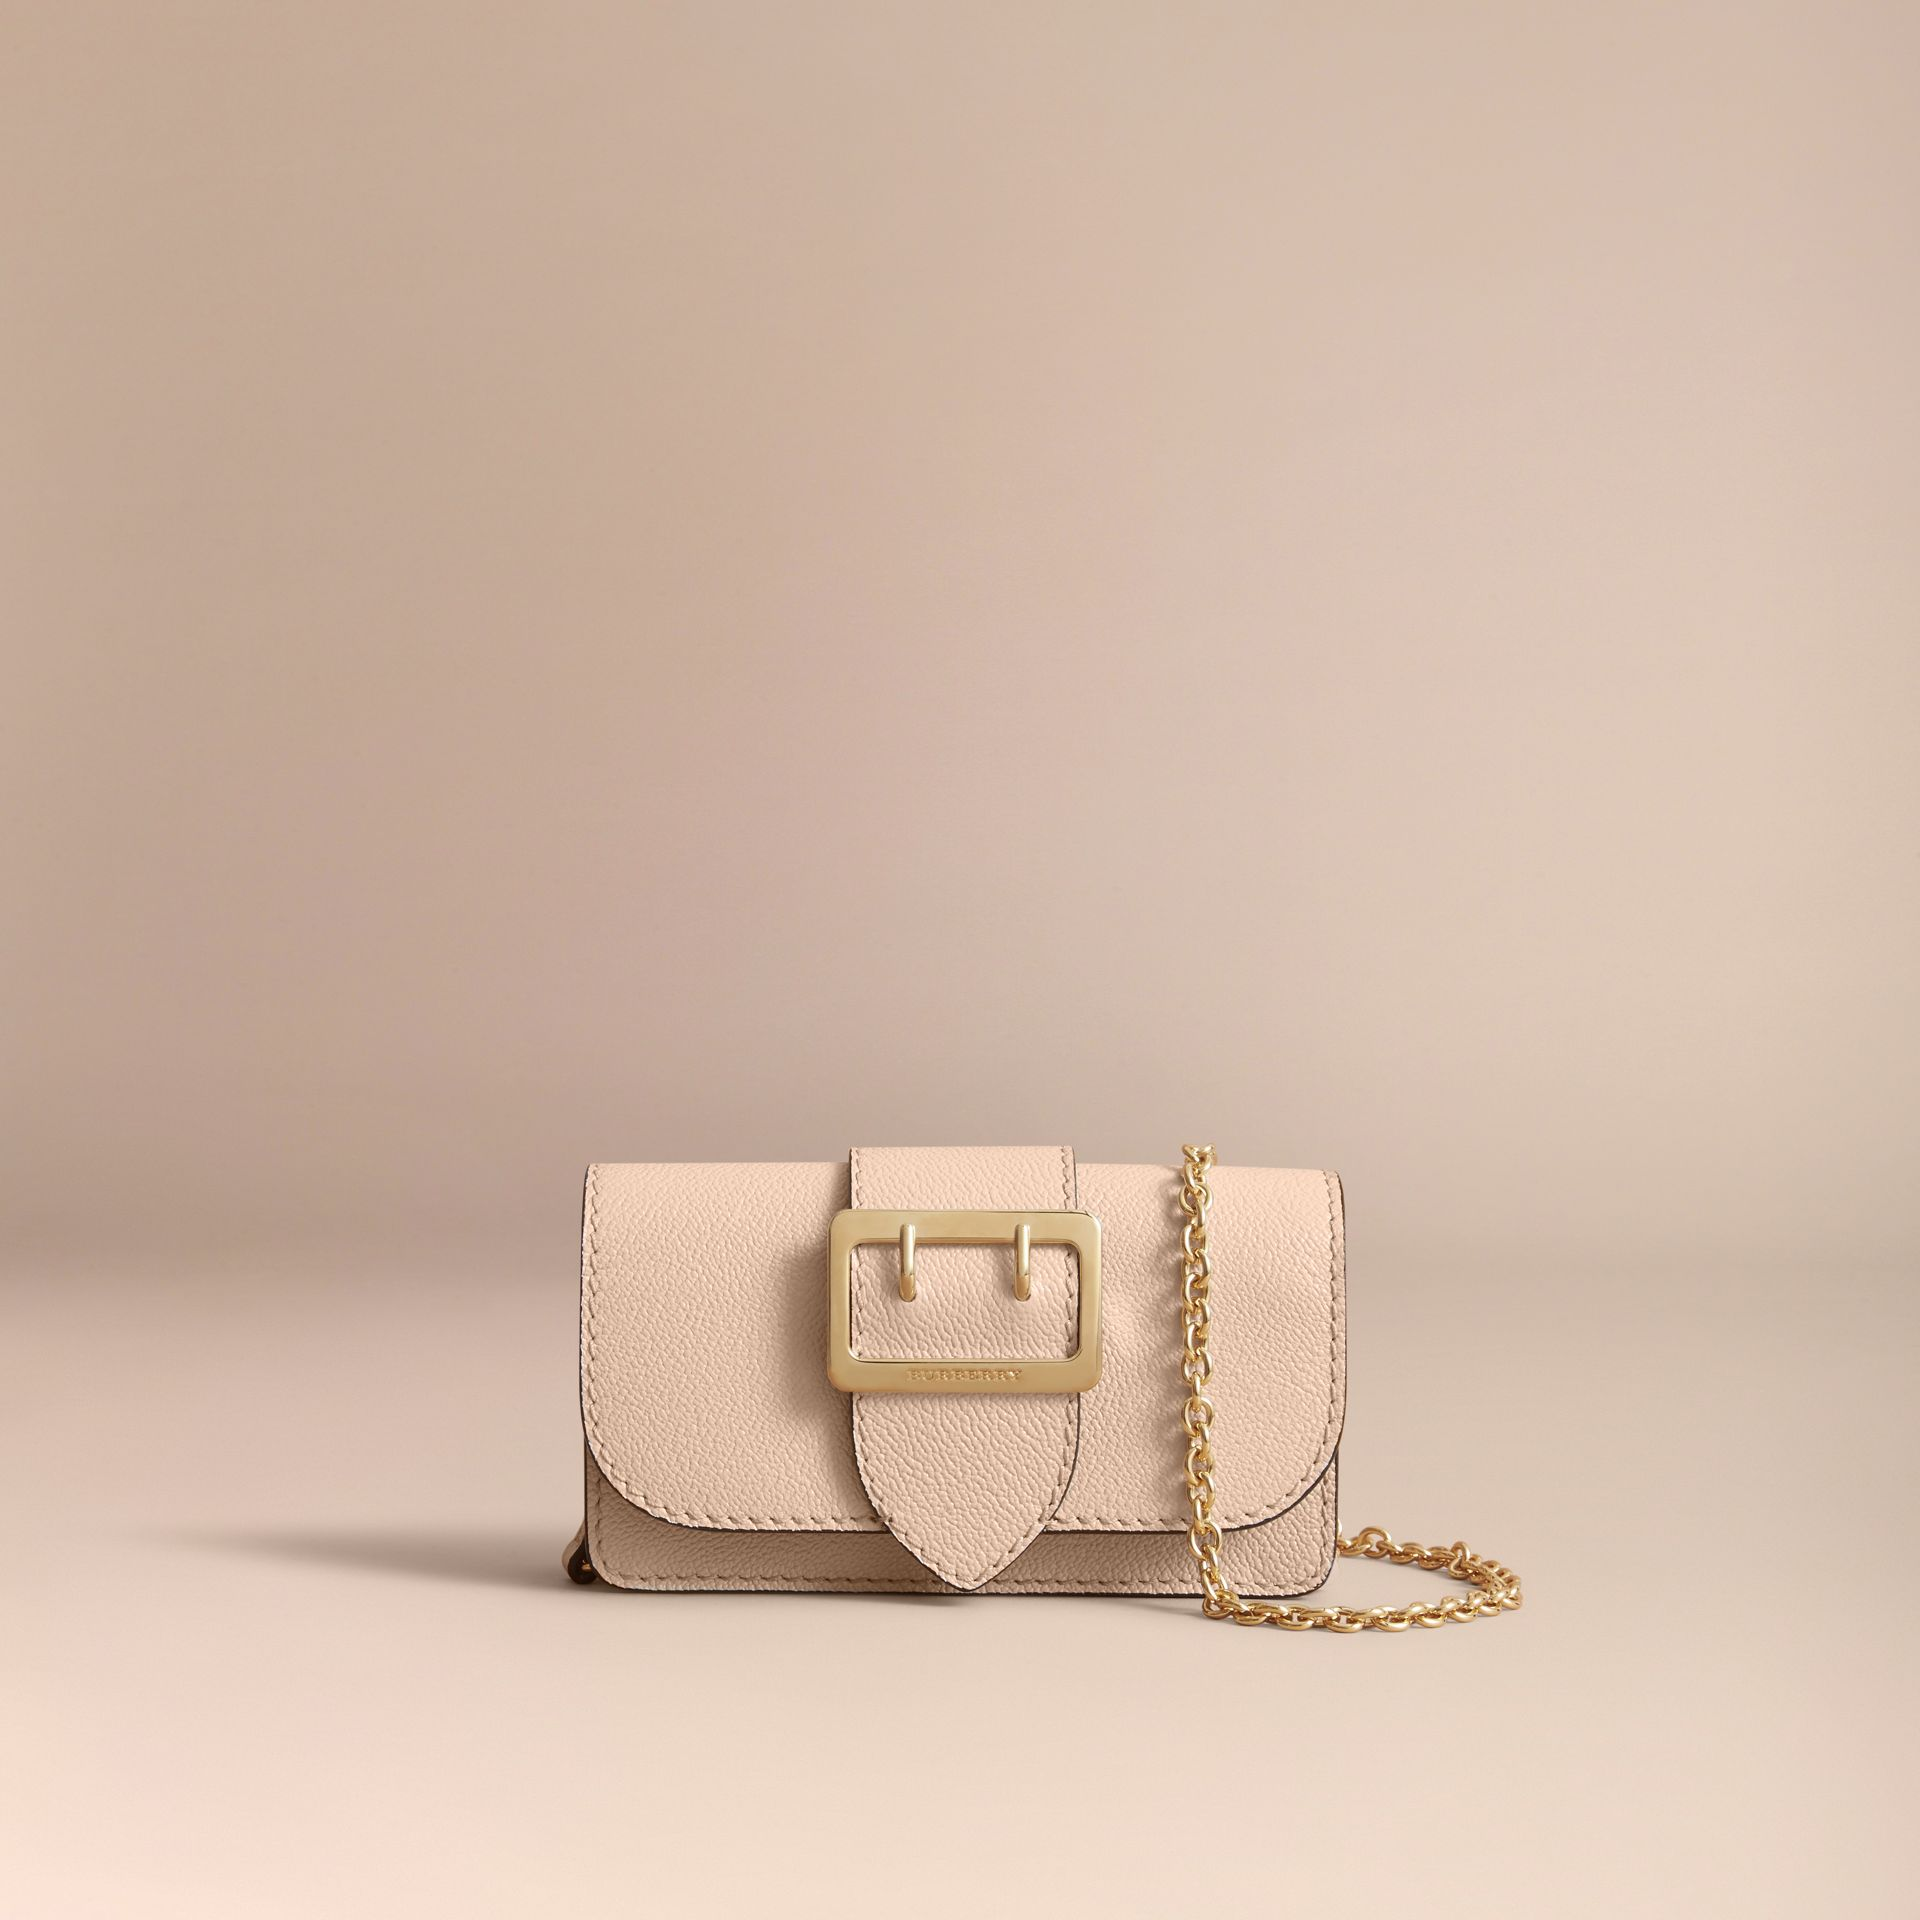 The Mini Buckle Bag in Grainy Leather in Limestone - Women | Burberry - gallery image 7